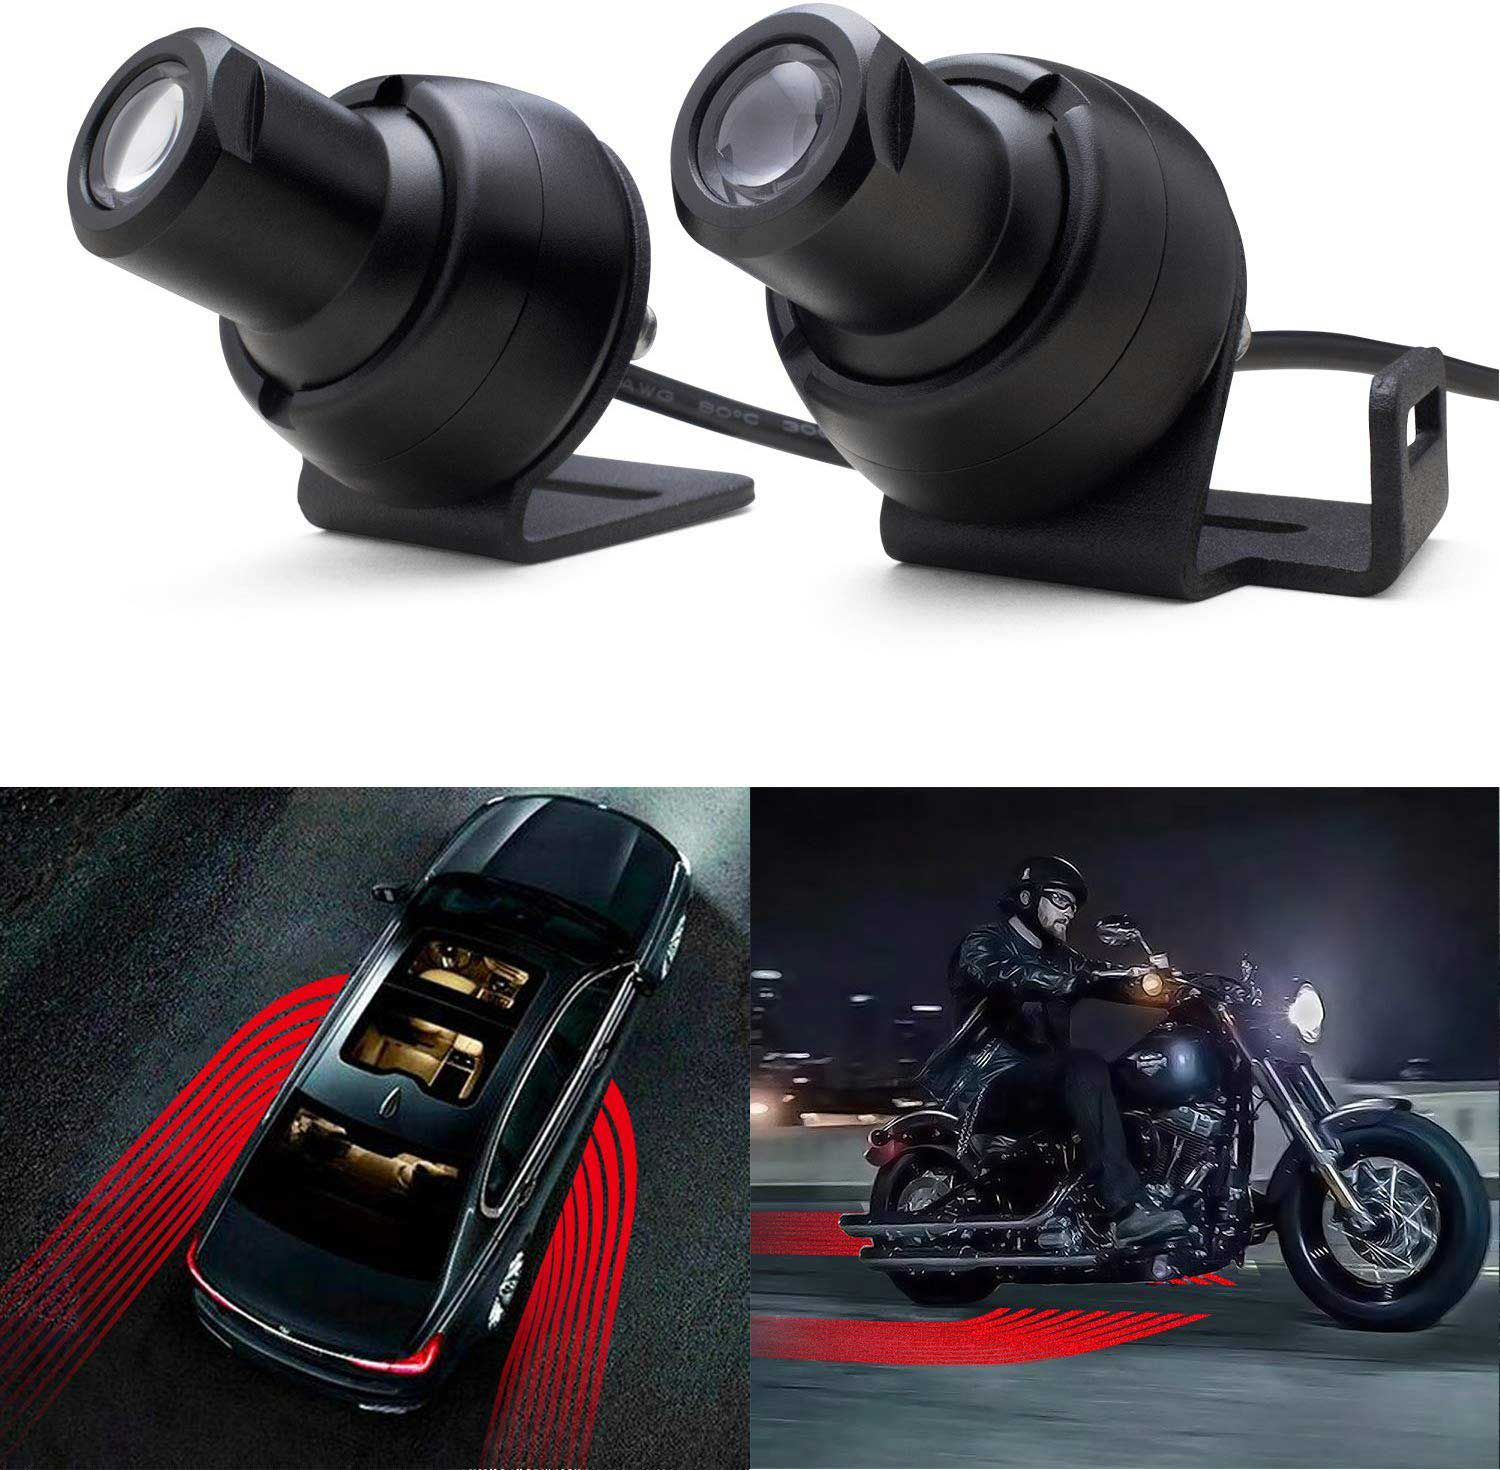 A cool lighting accessory for your bike that you can control.